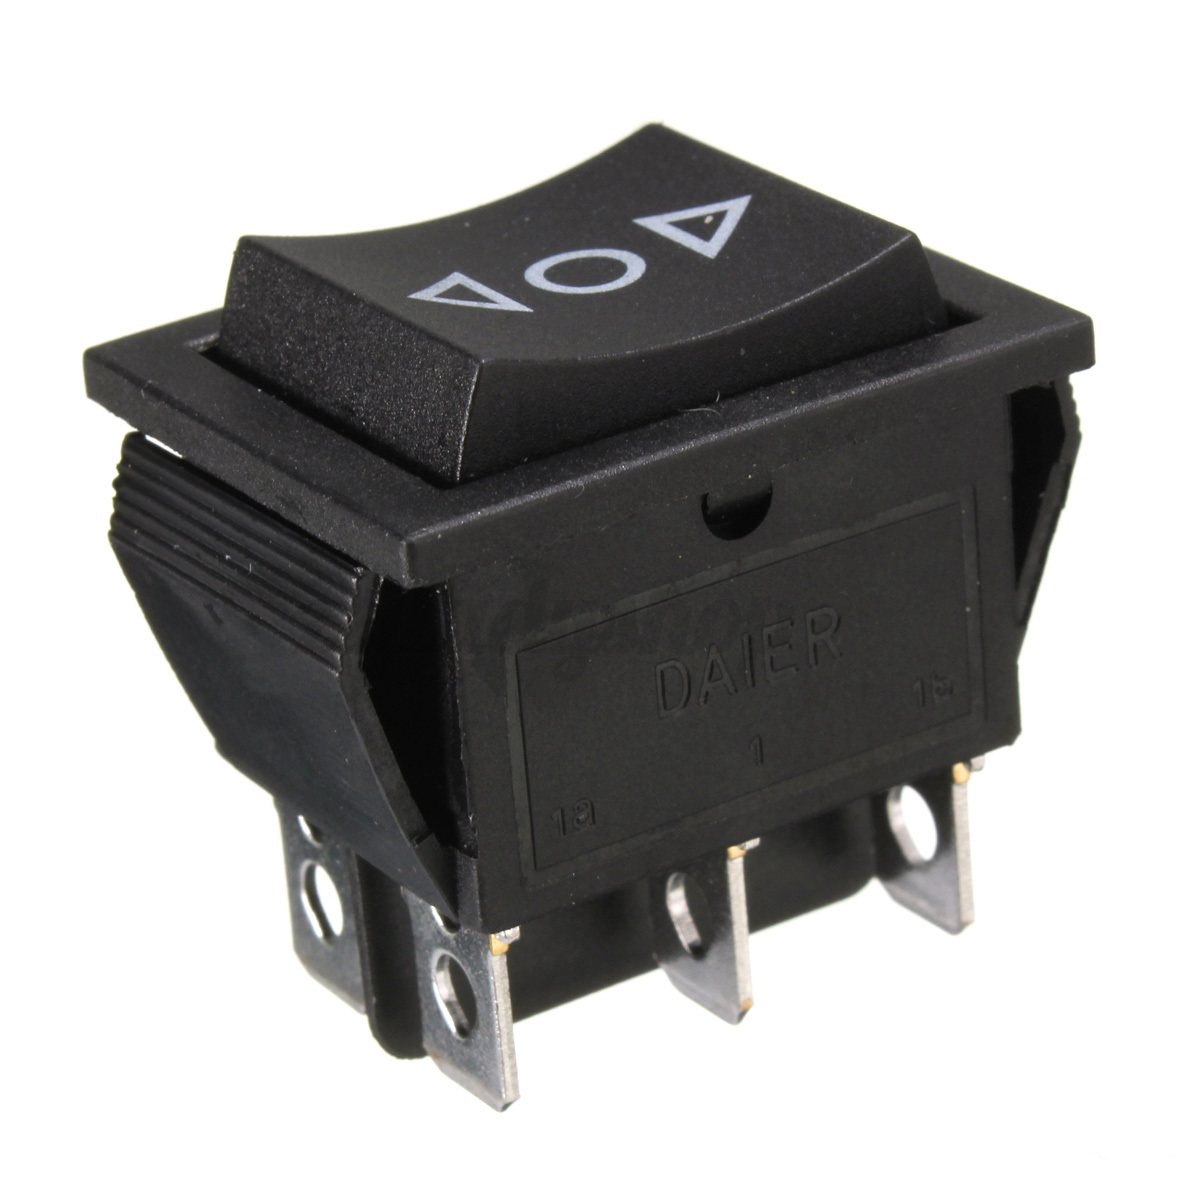 Black Dpdt Double Pole Double Throw Rocker Switch